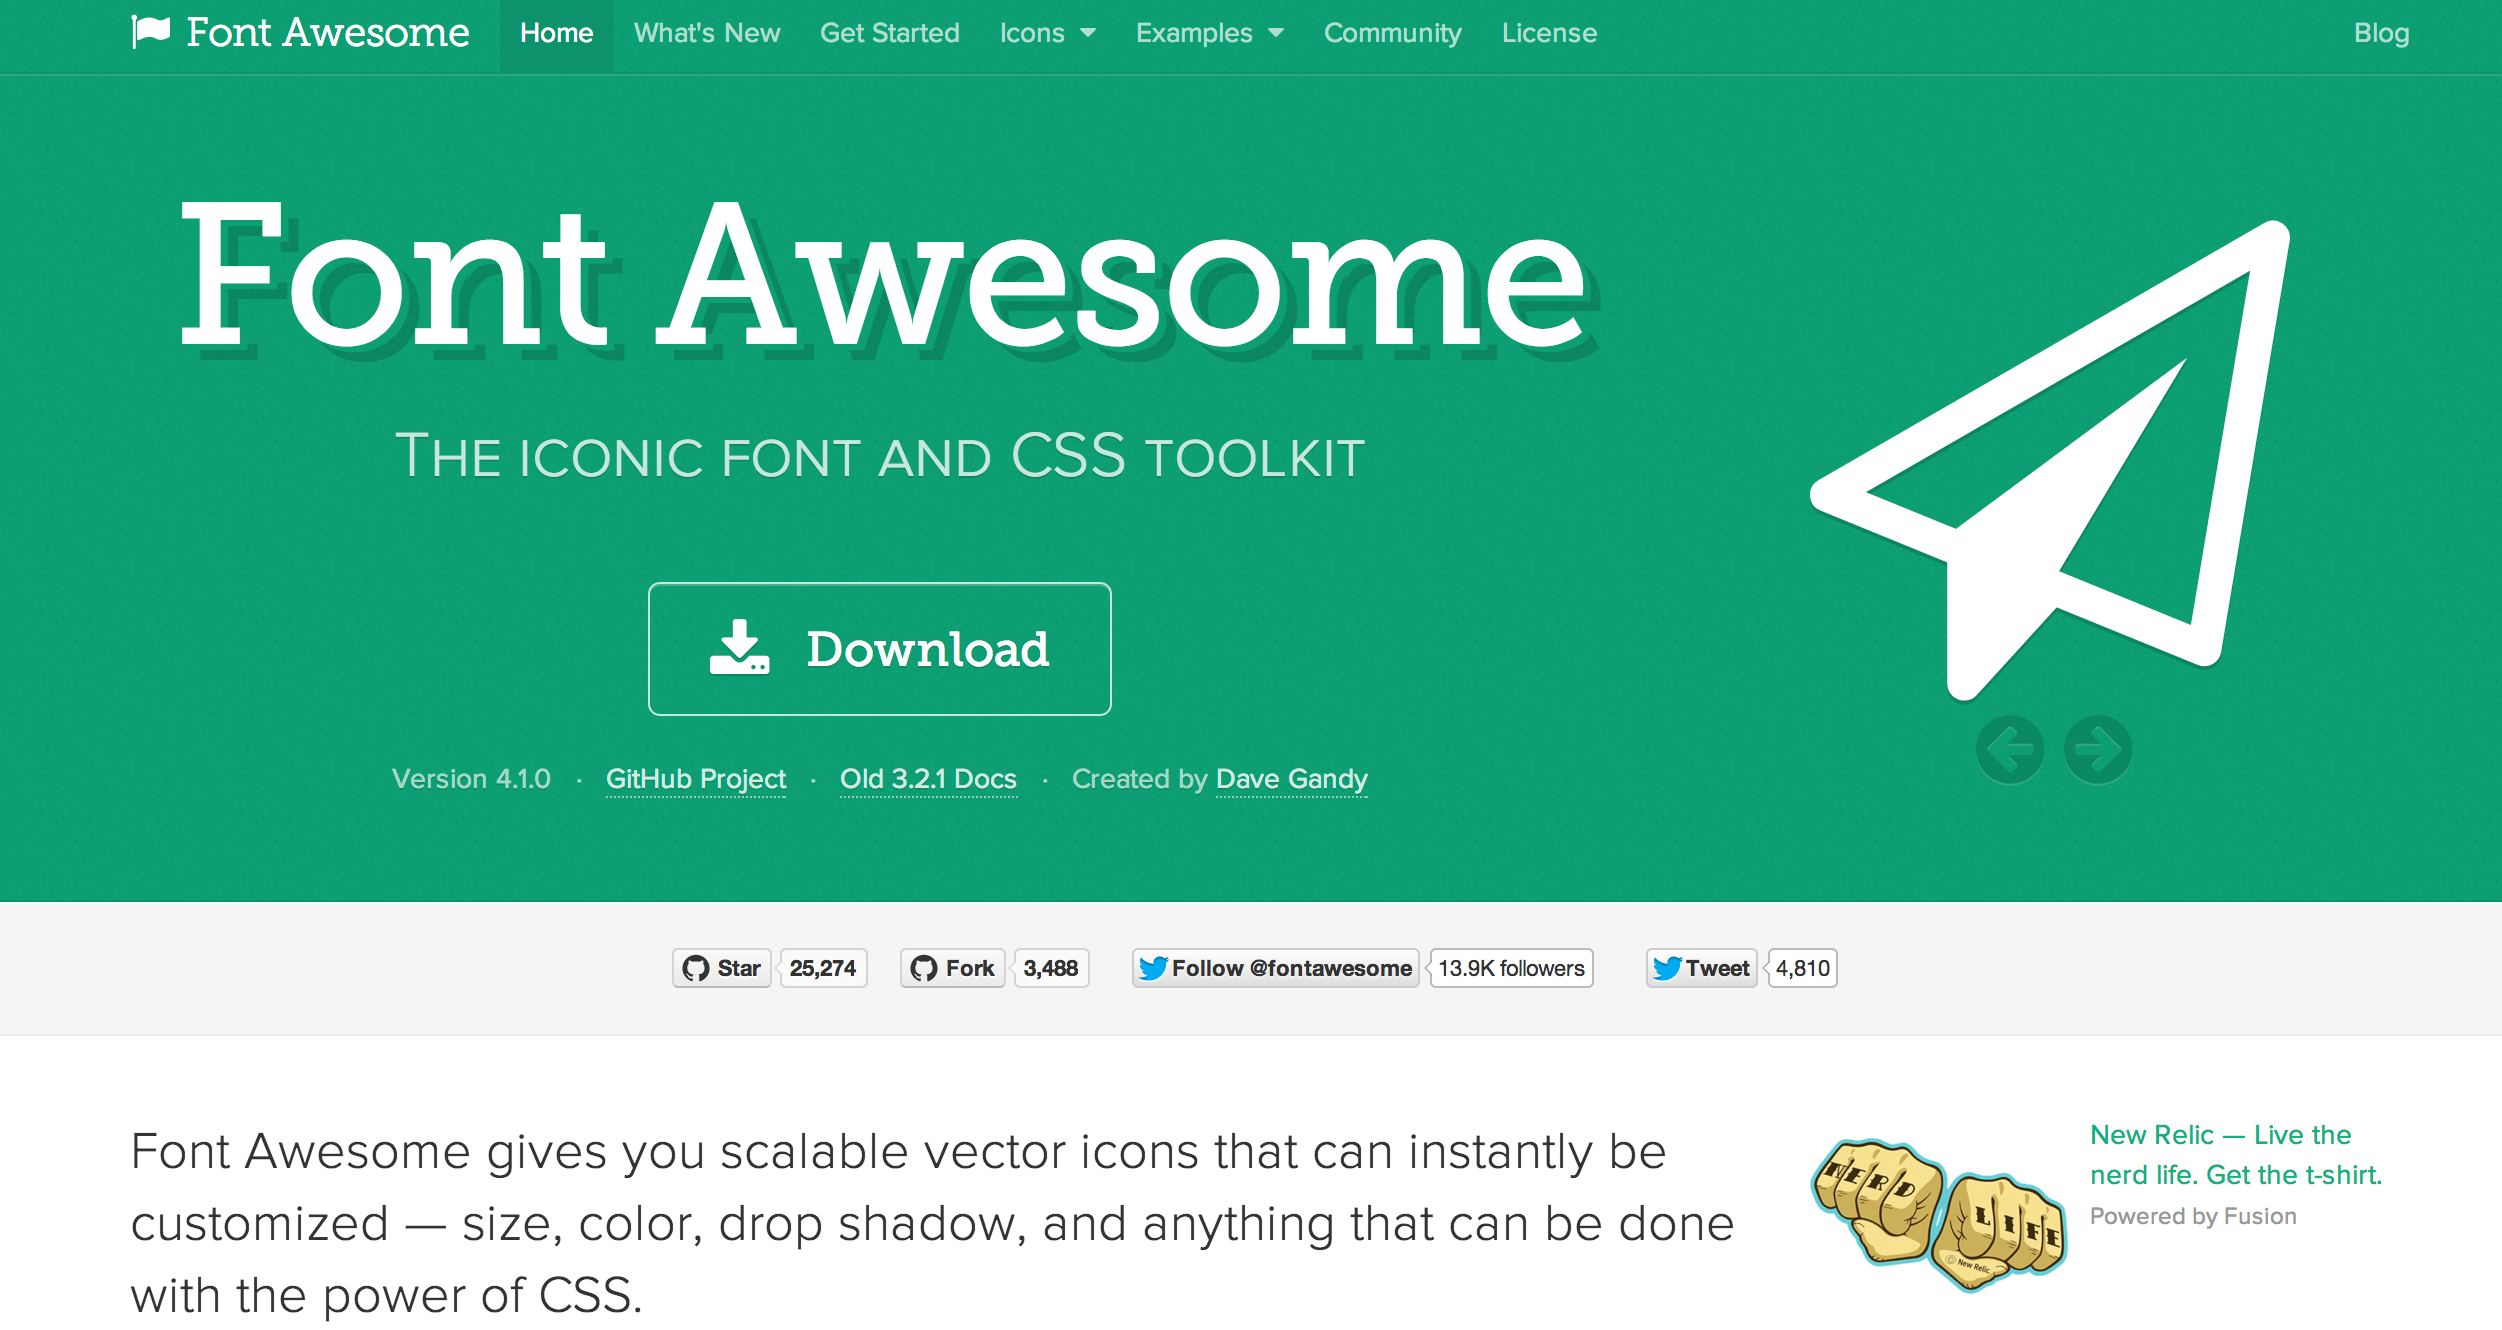 Font_Awesome__the_iconic_font_and_CSS_toolkit